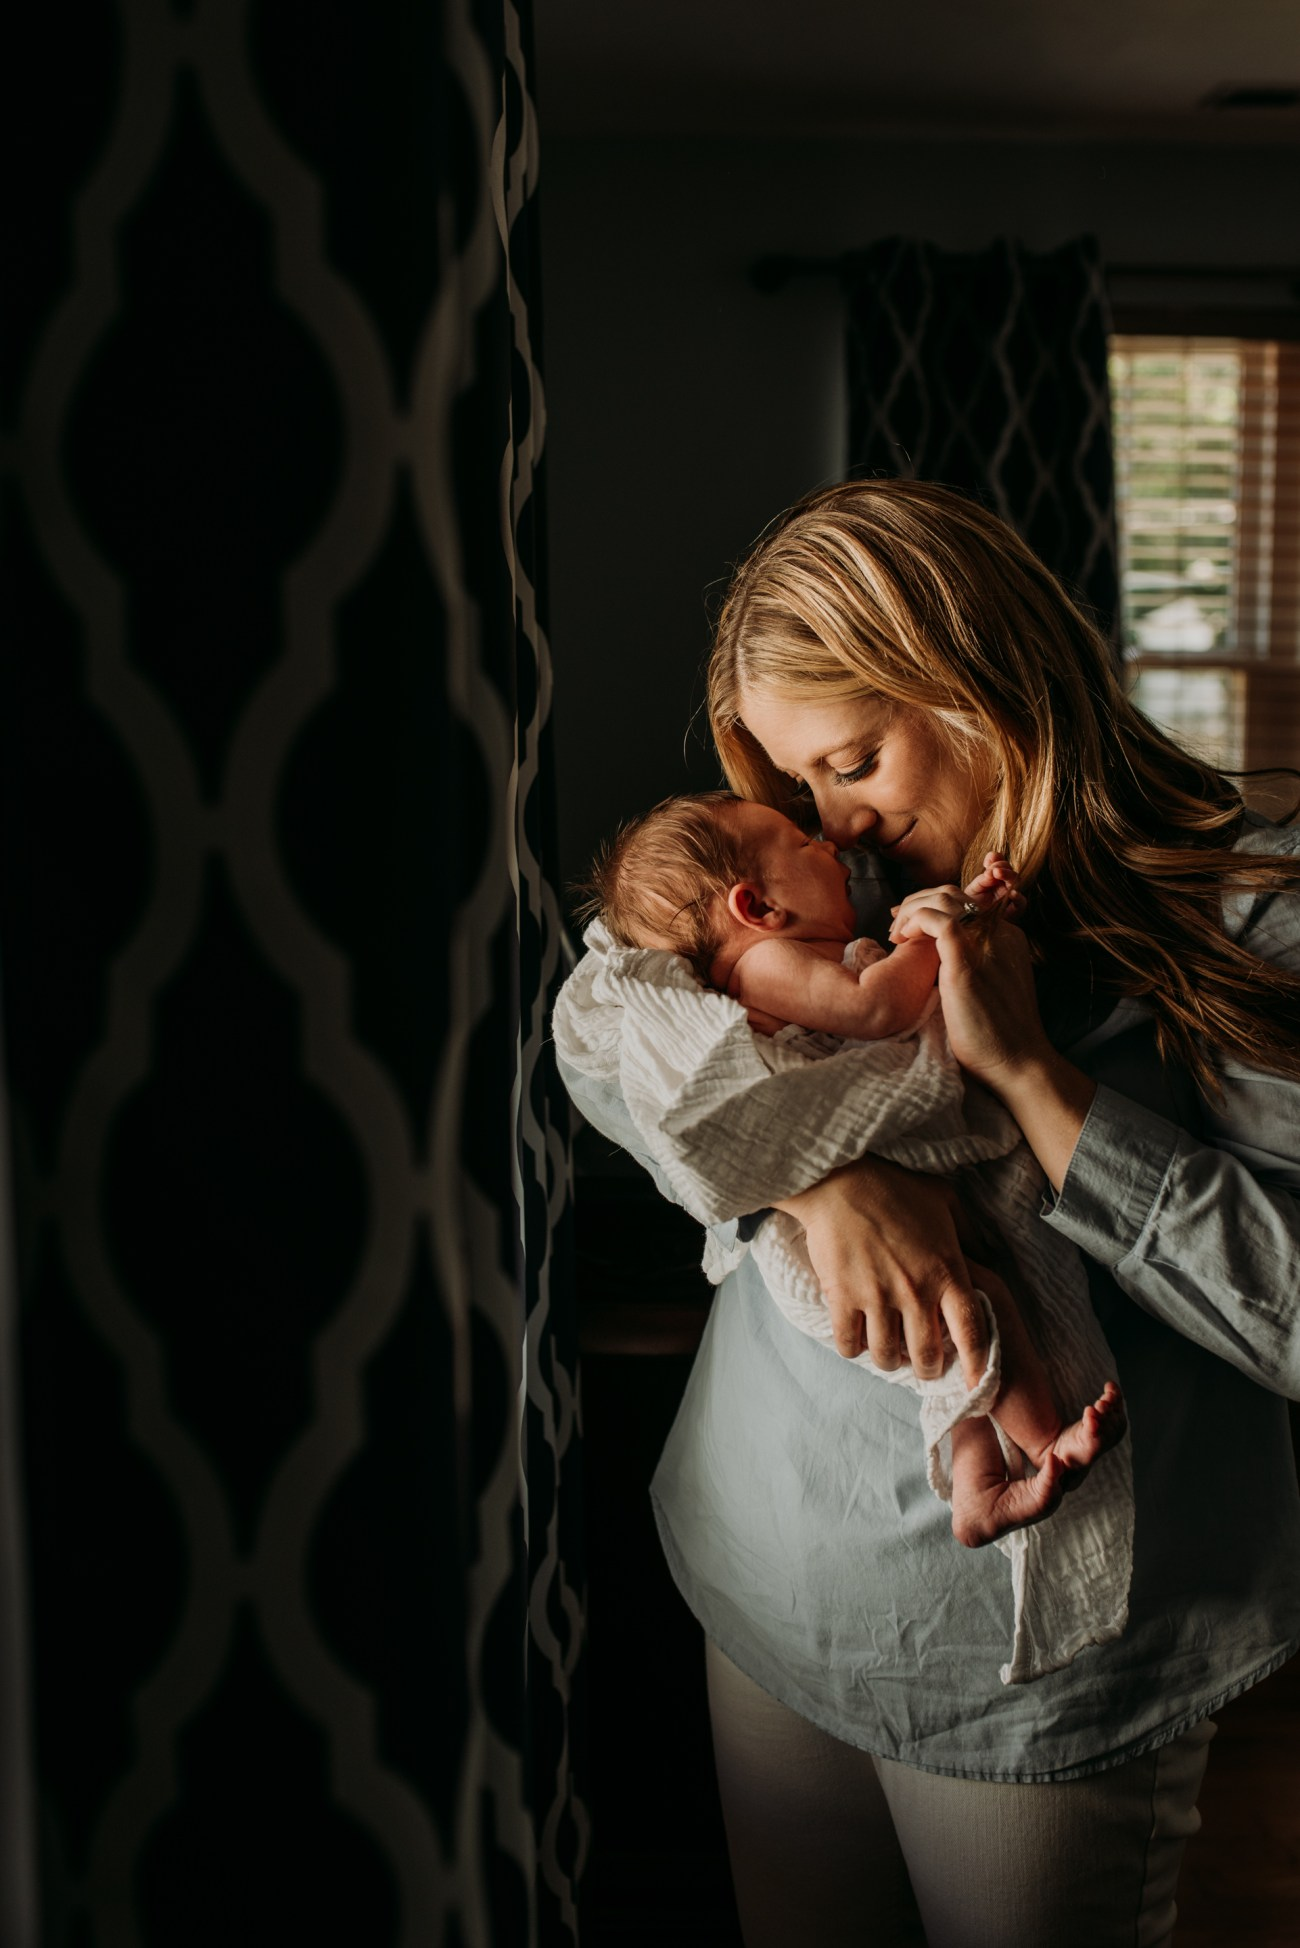 CamilleCamachoPhotography_Virginia_Lifestyle_Newborn-17